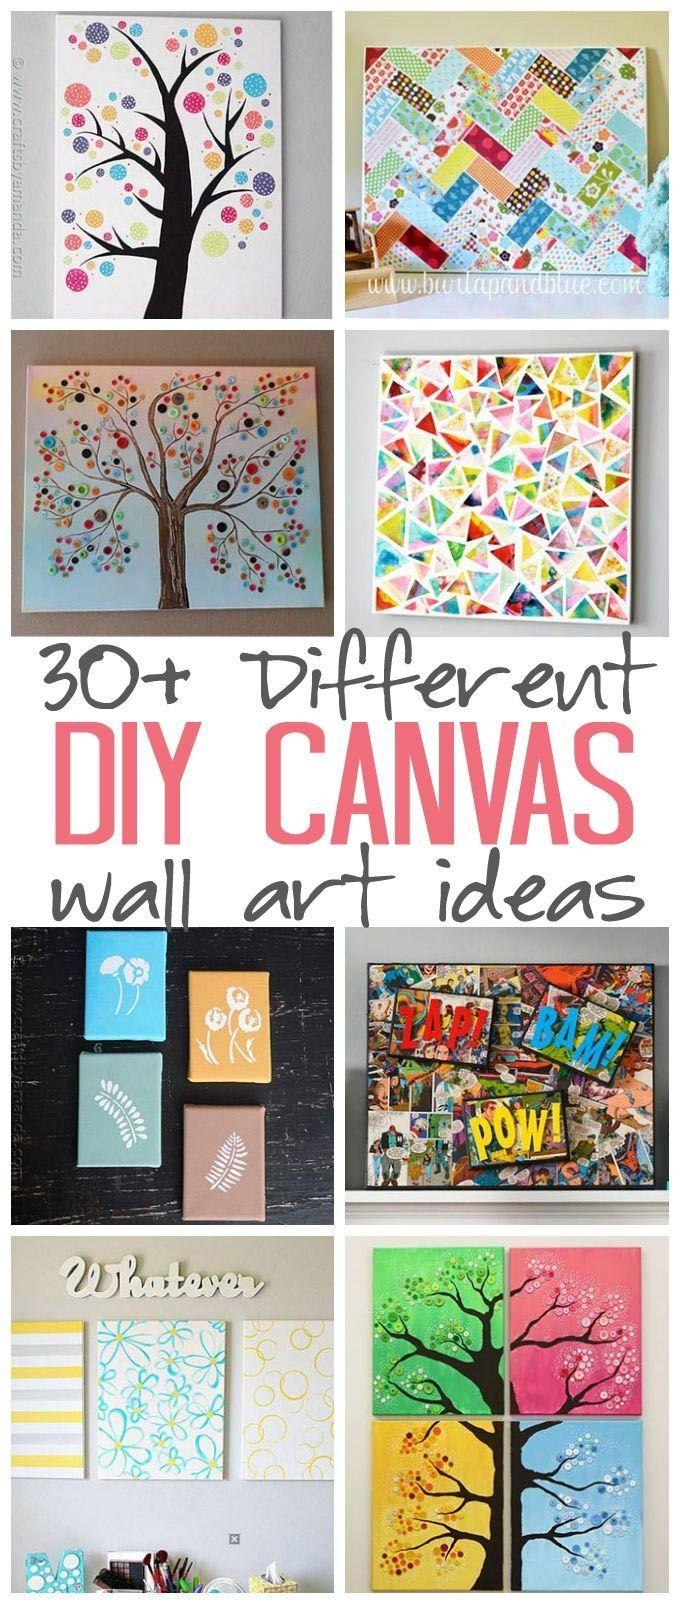 Best 20+ Canvas Wall Art Ideas On Pinterest—No Signup Required Pertaining To Small Canvas Wall Art (Image 4 of 20)